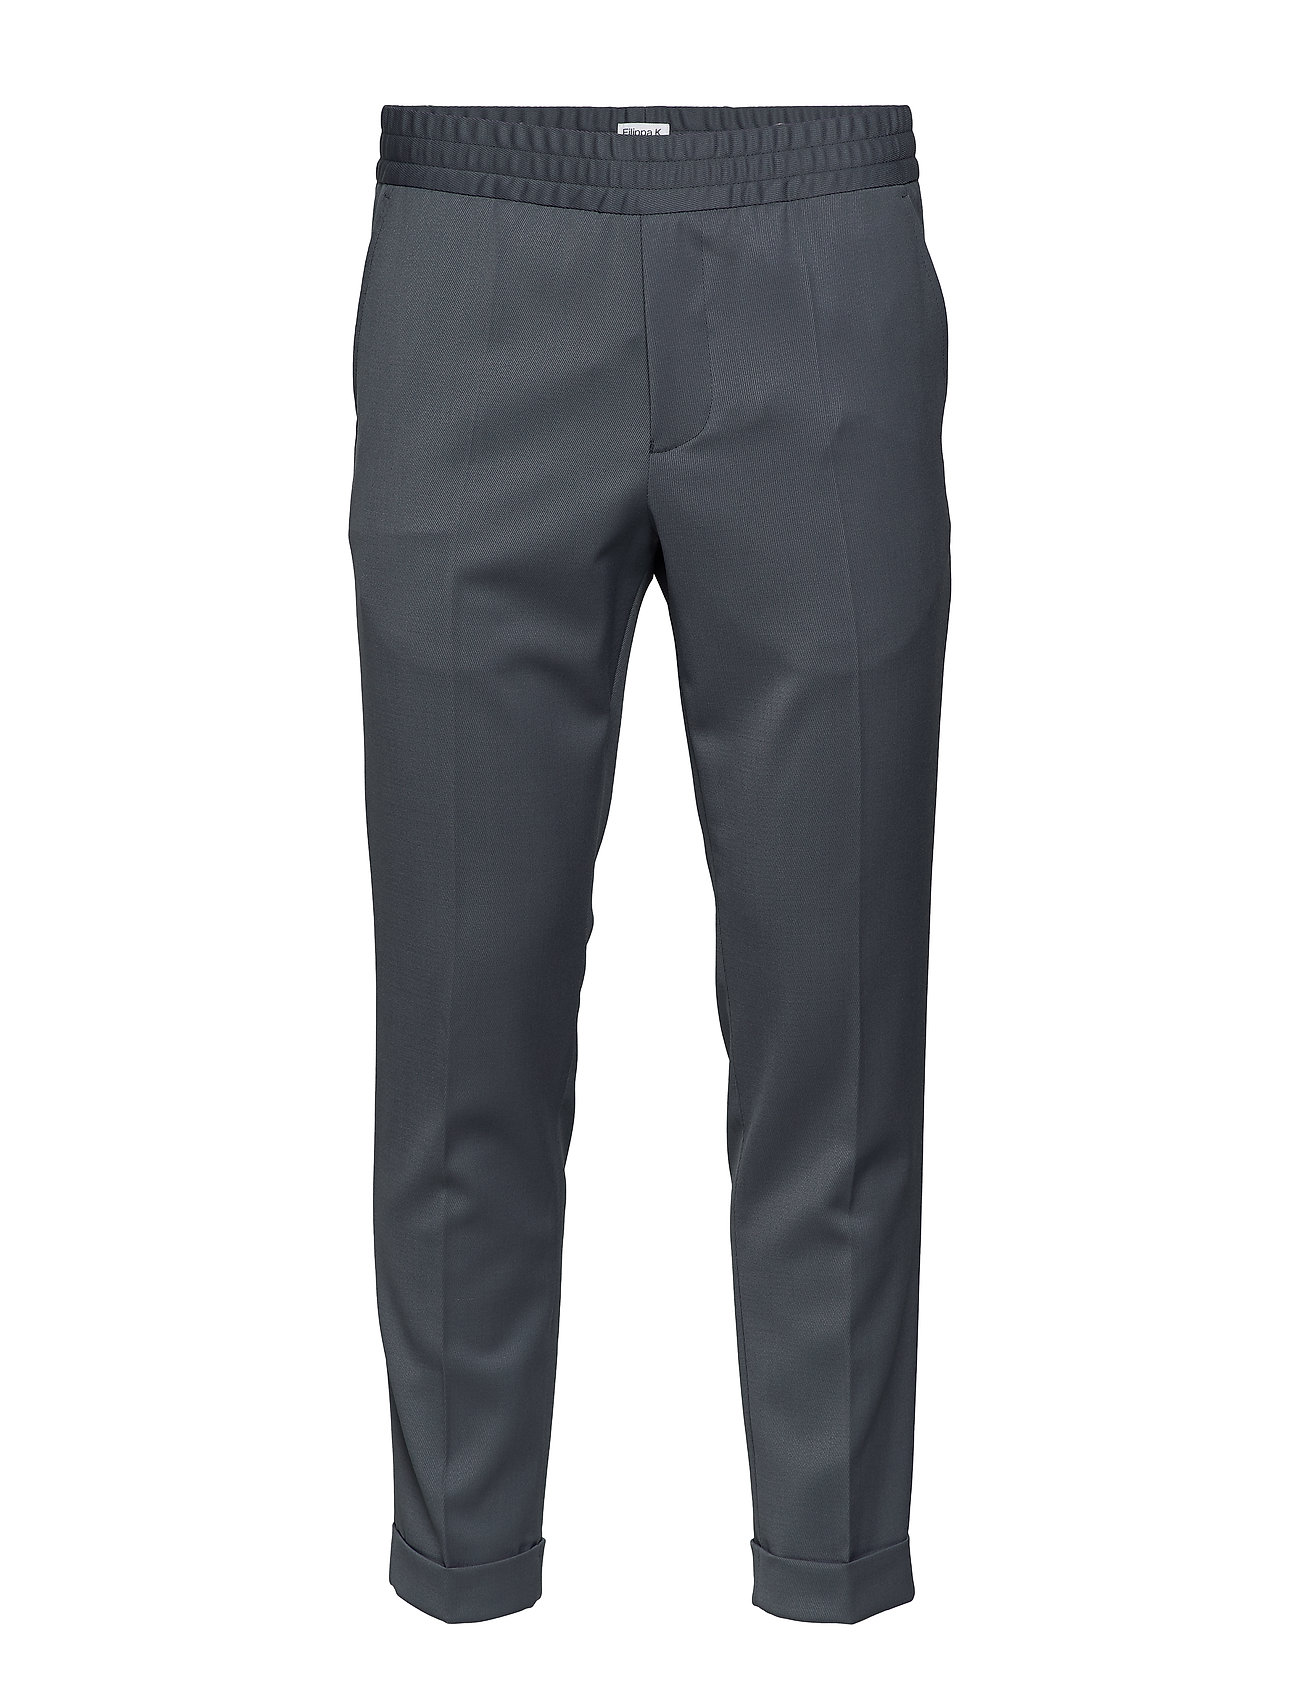 Filippa K M. Terry Gabardine Pants - BLUE GREY